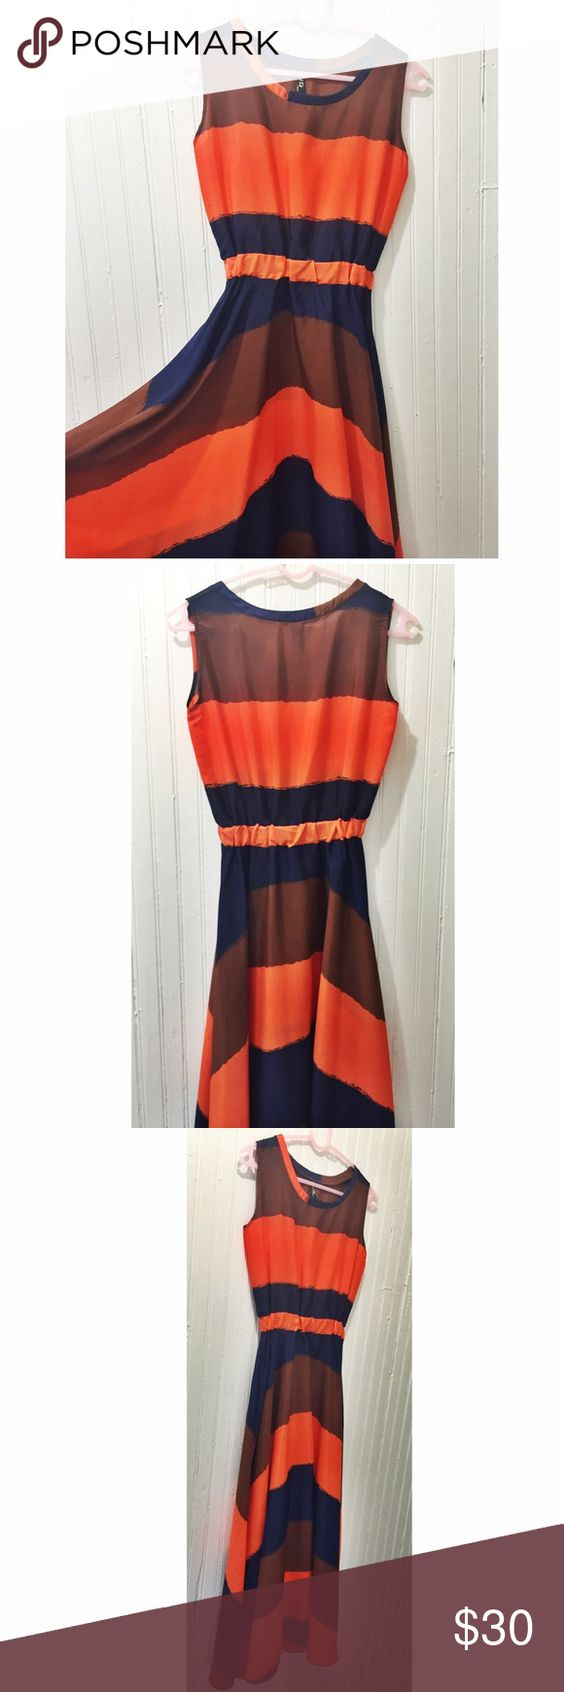 Modern striped A-line dress Orange, blue, and brown striped dress. Not a true maxi, more like 3/4 length unless you are petite. Fits like XS but would fit S with small bust and waist. H&M for exposure H&M Dresses